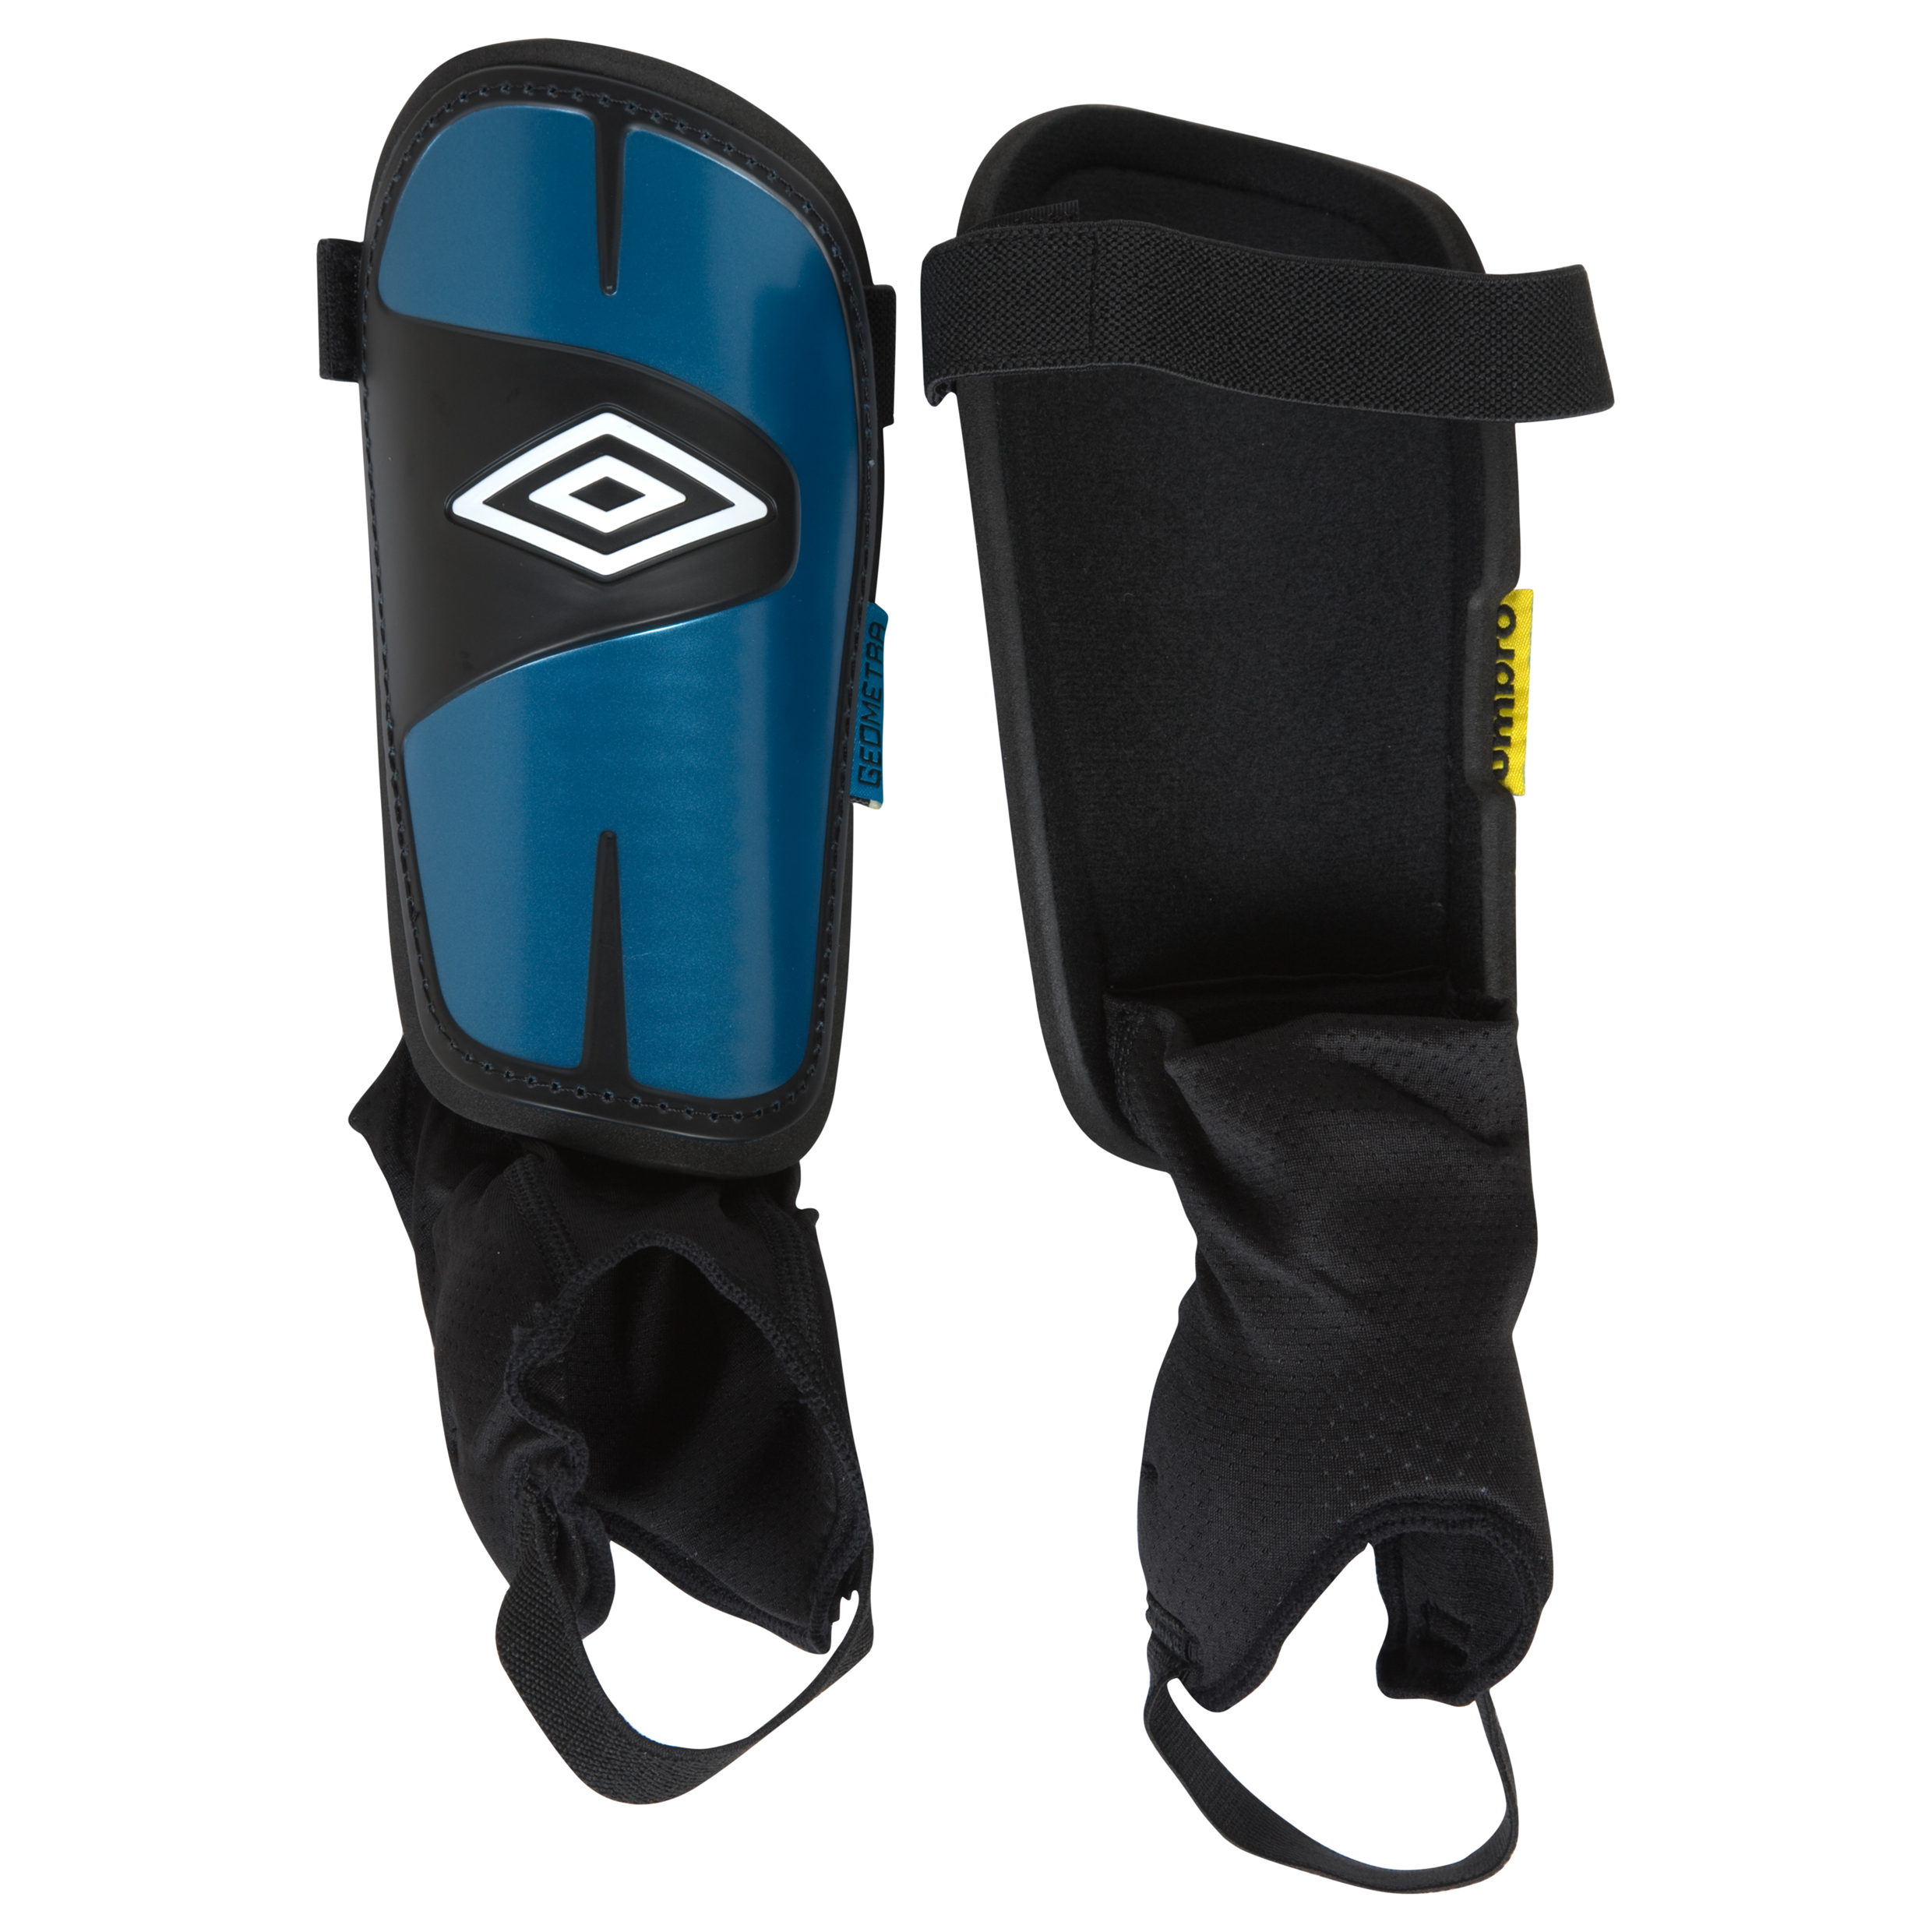 Umbro Geometra Cup Guard - Vivid Blue/Black/White